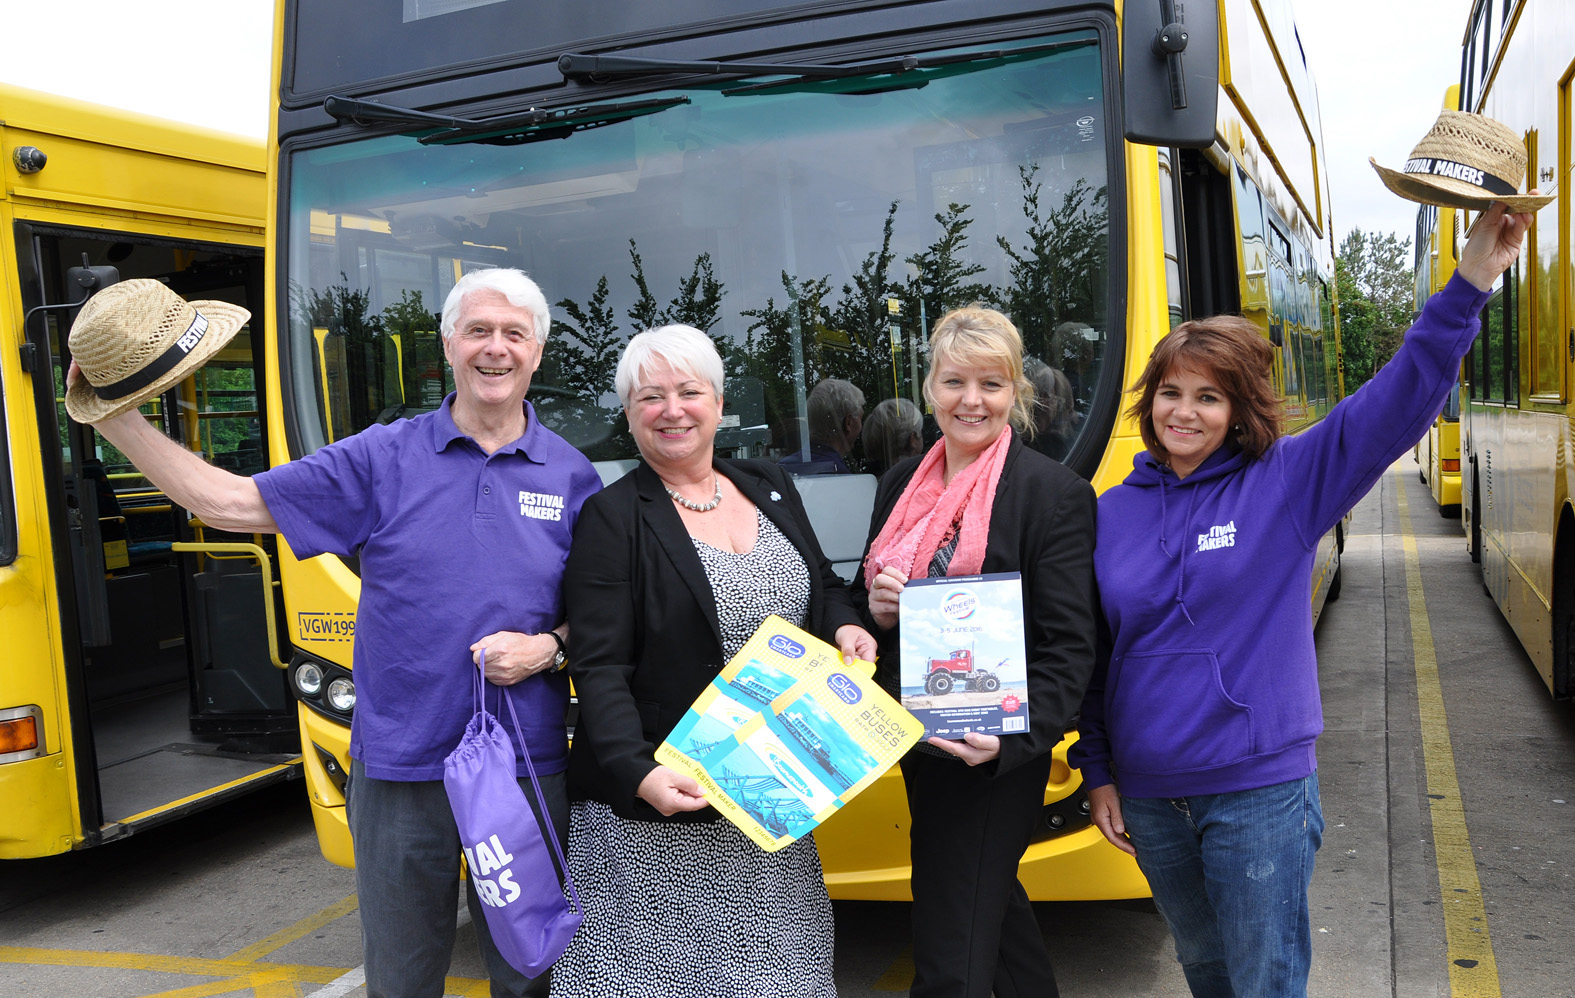 Festival Makers Marion Milne and Richard French in purple, with Yellows' Jenni Wilkinson (left) and Fiona Harwood.